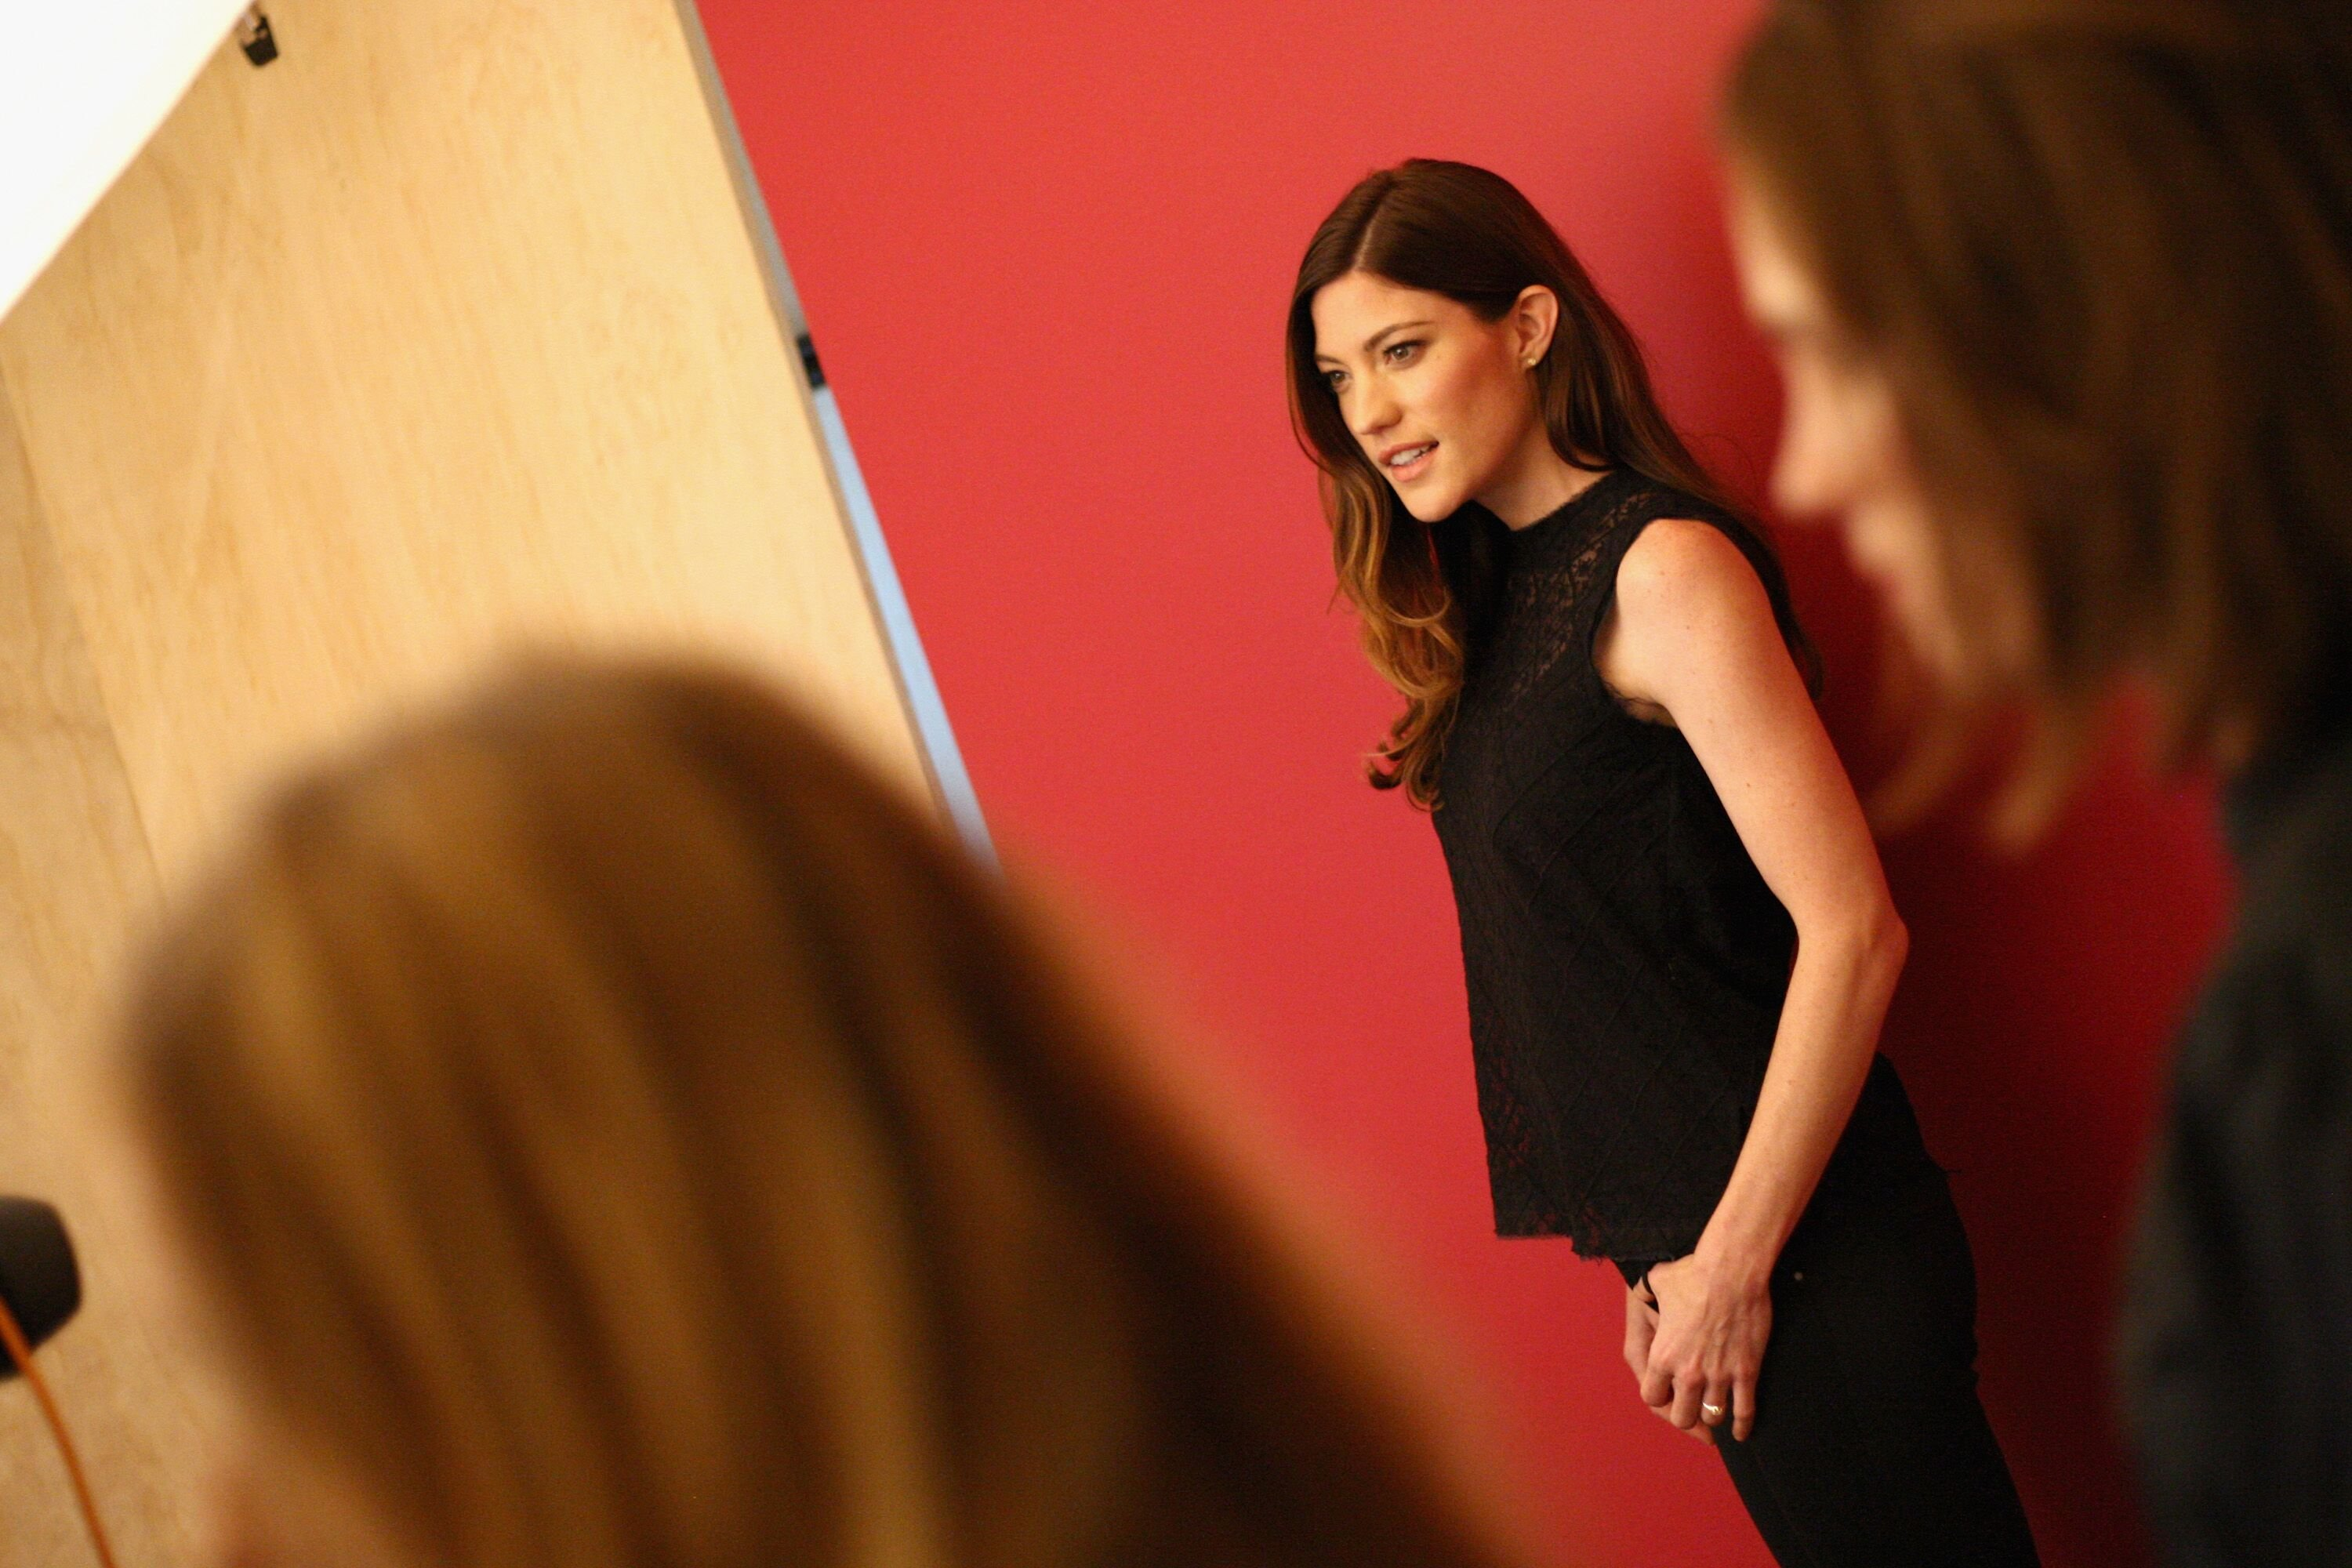 Jennifer Carpenter attends Behind The Scenes Of The Getty Images Portrait Studio Powered By Samsung Galaxy At 2015 Summer TCA's at The Beverly Hilton Hotel on August 10, 2015 in Beverly Hills, California. | Source: Getty Images